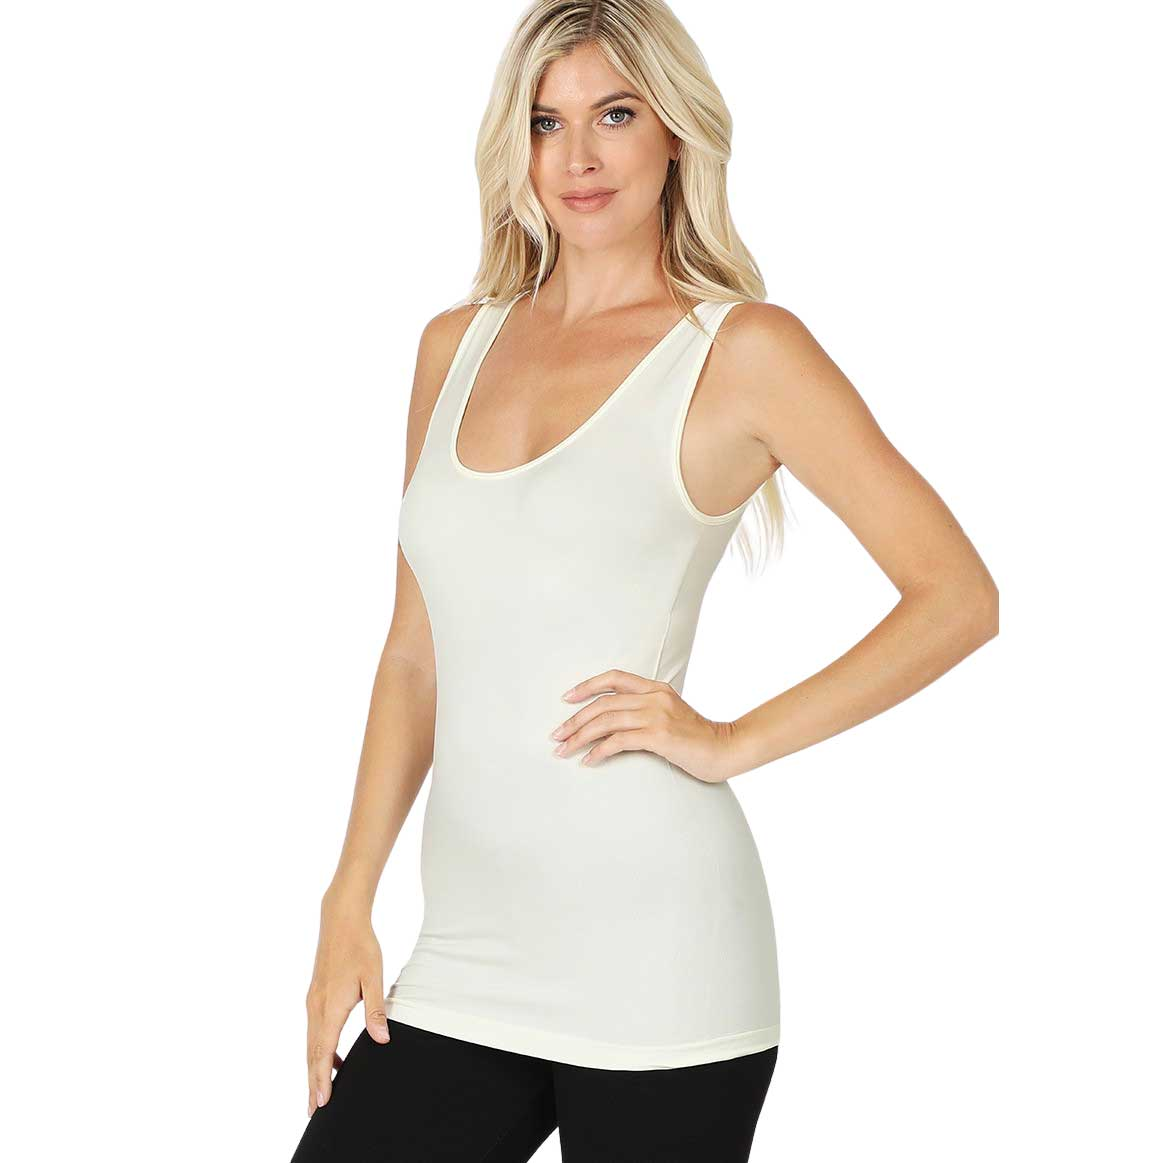 Form Fit Scoop Neck Seamless Tank Top 6700